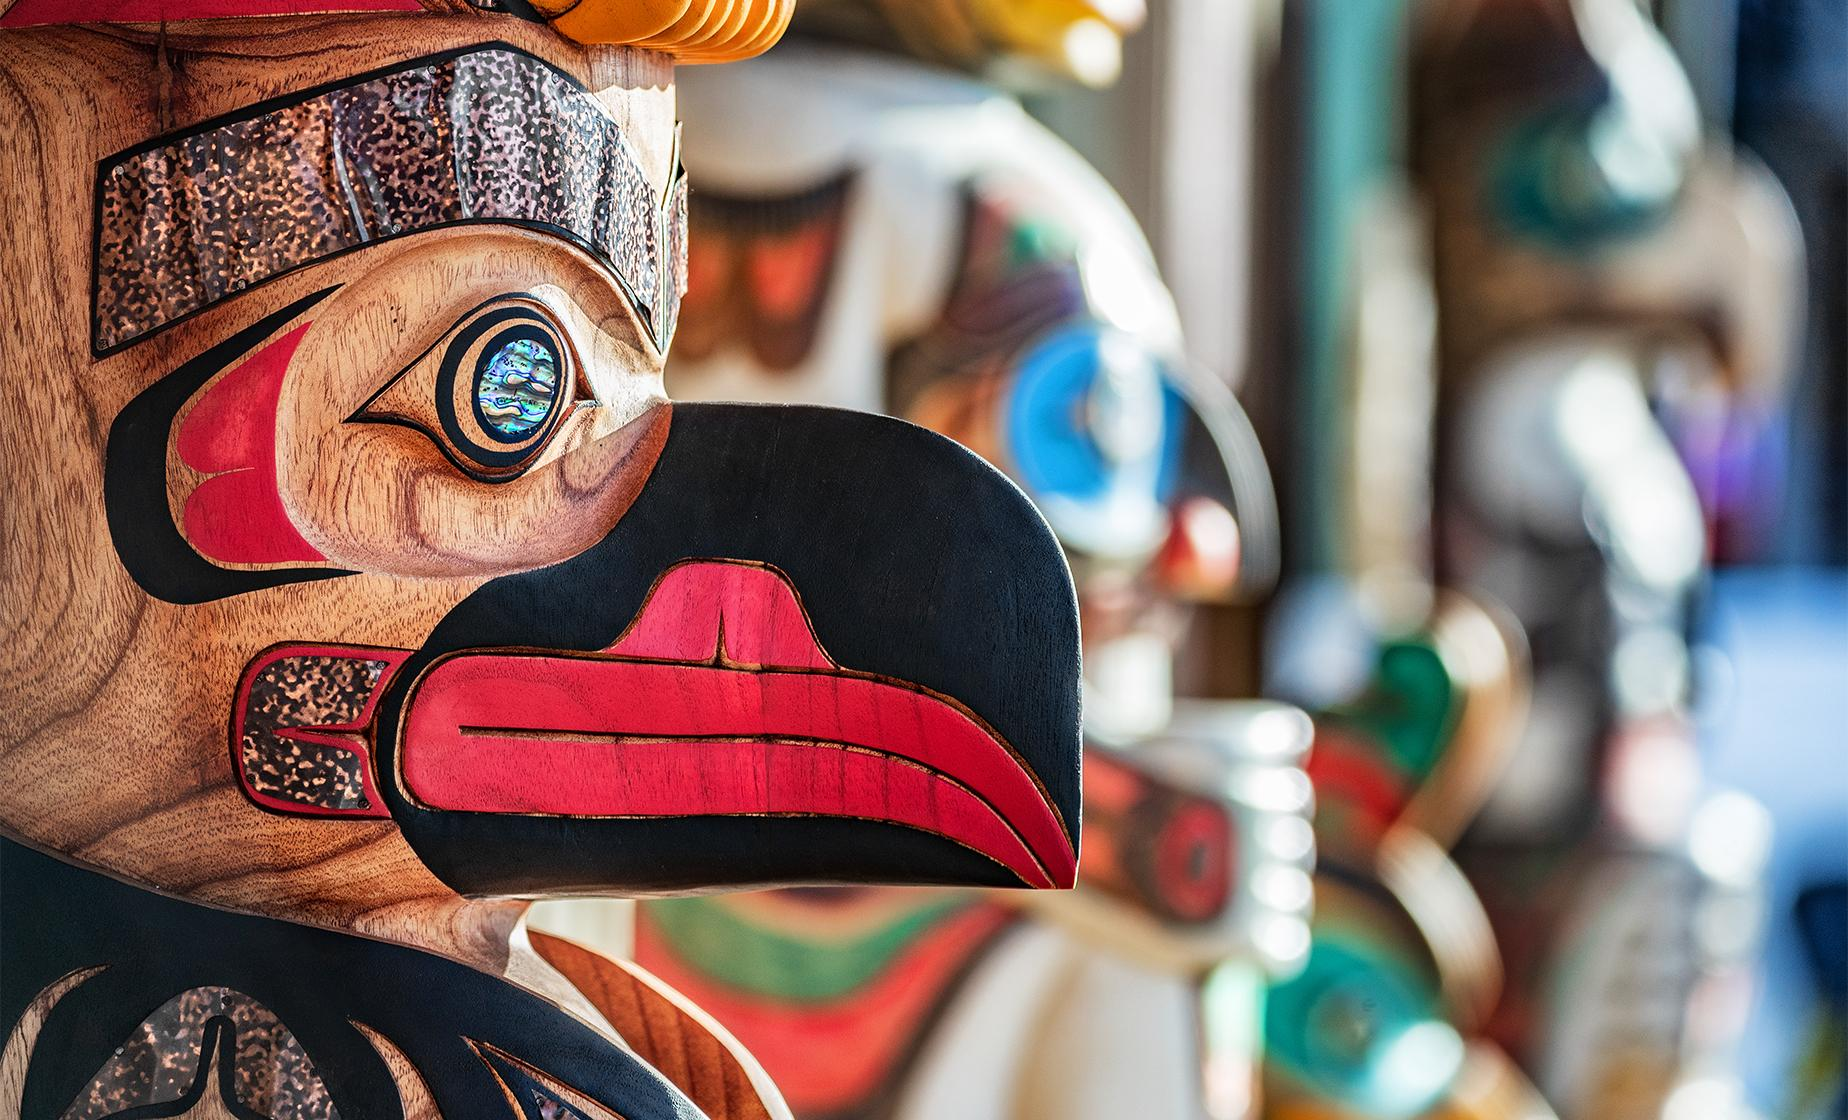 The Totems of Ketchikan